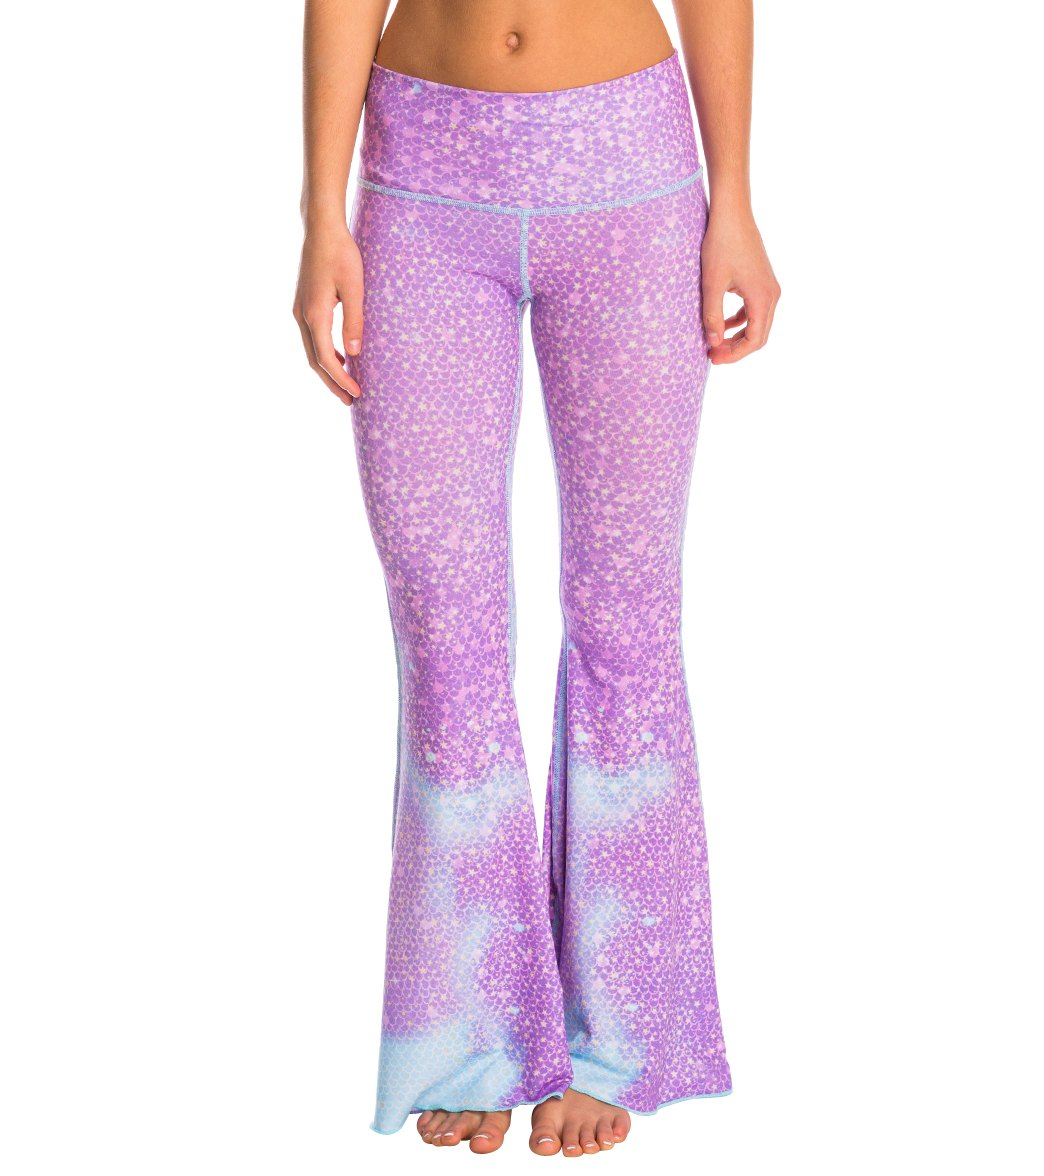 5a3514e0b0 Teeki Lavender Mermaid Fairy Queen Bell Bottom Yoga Pants